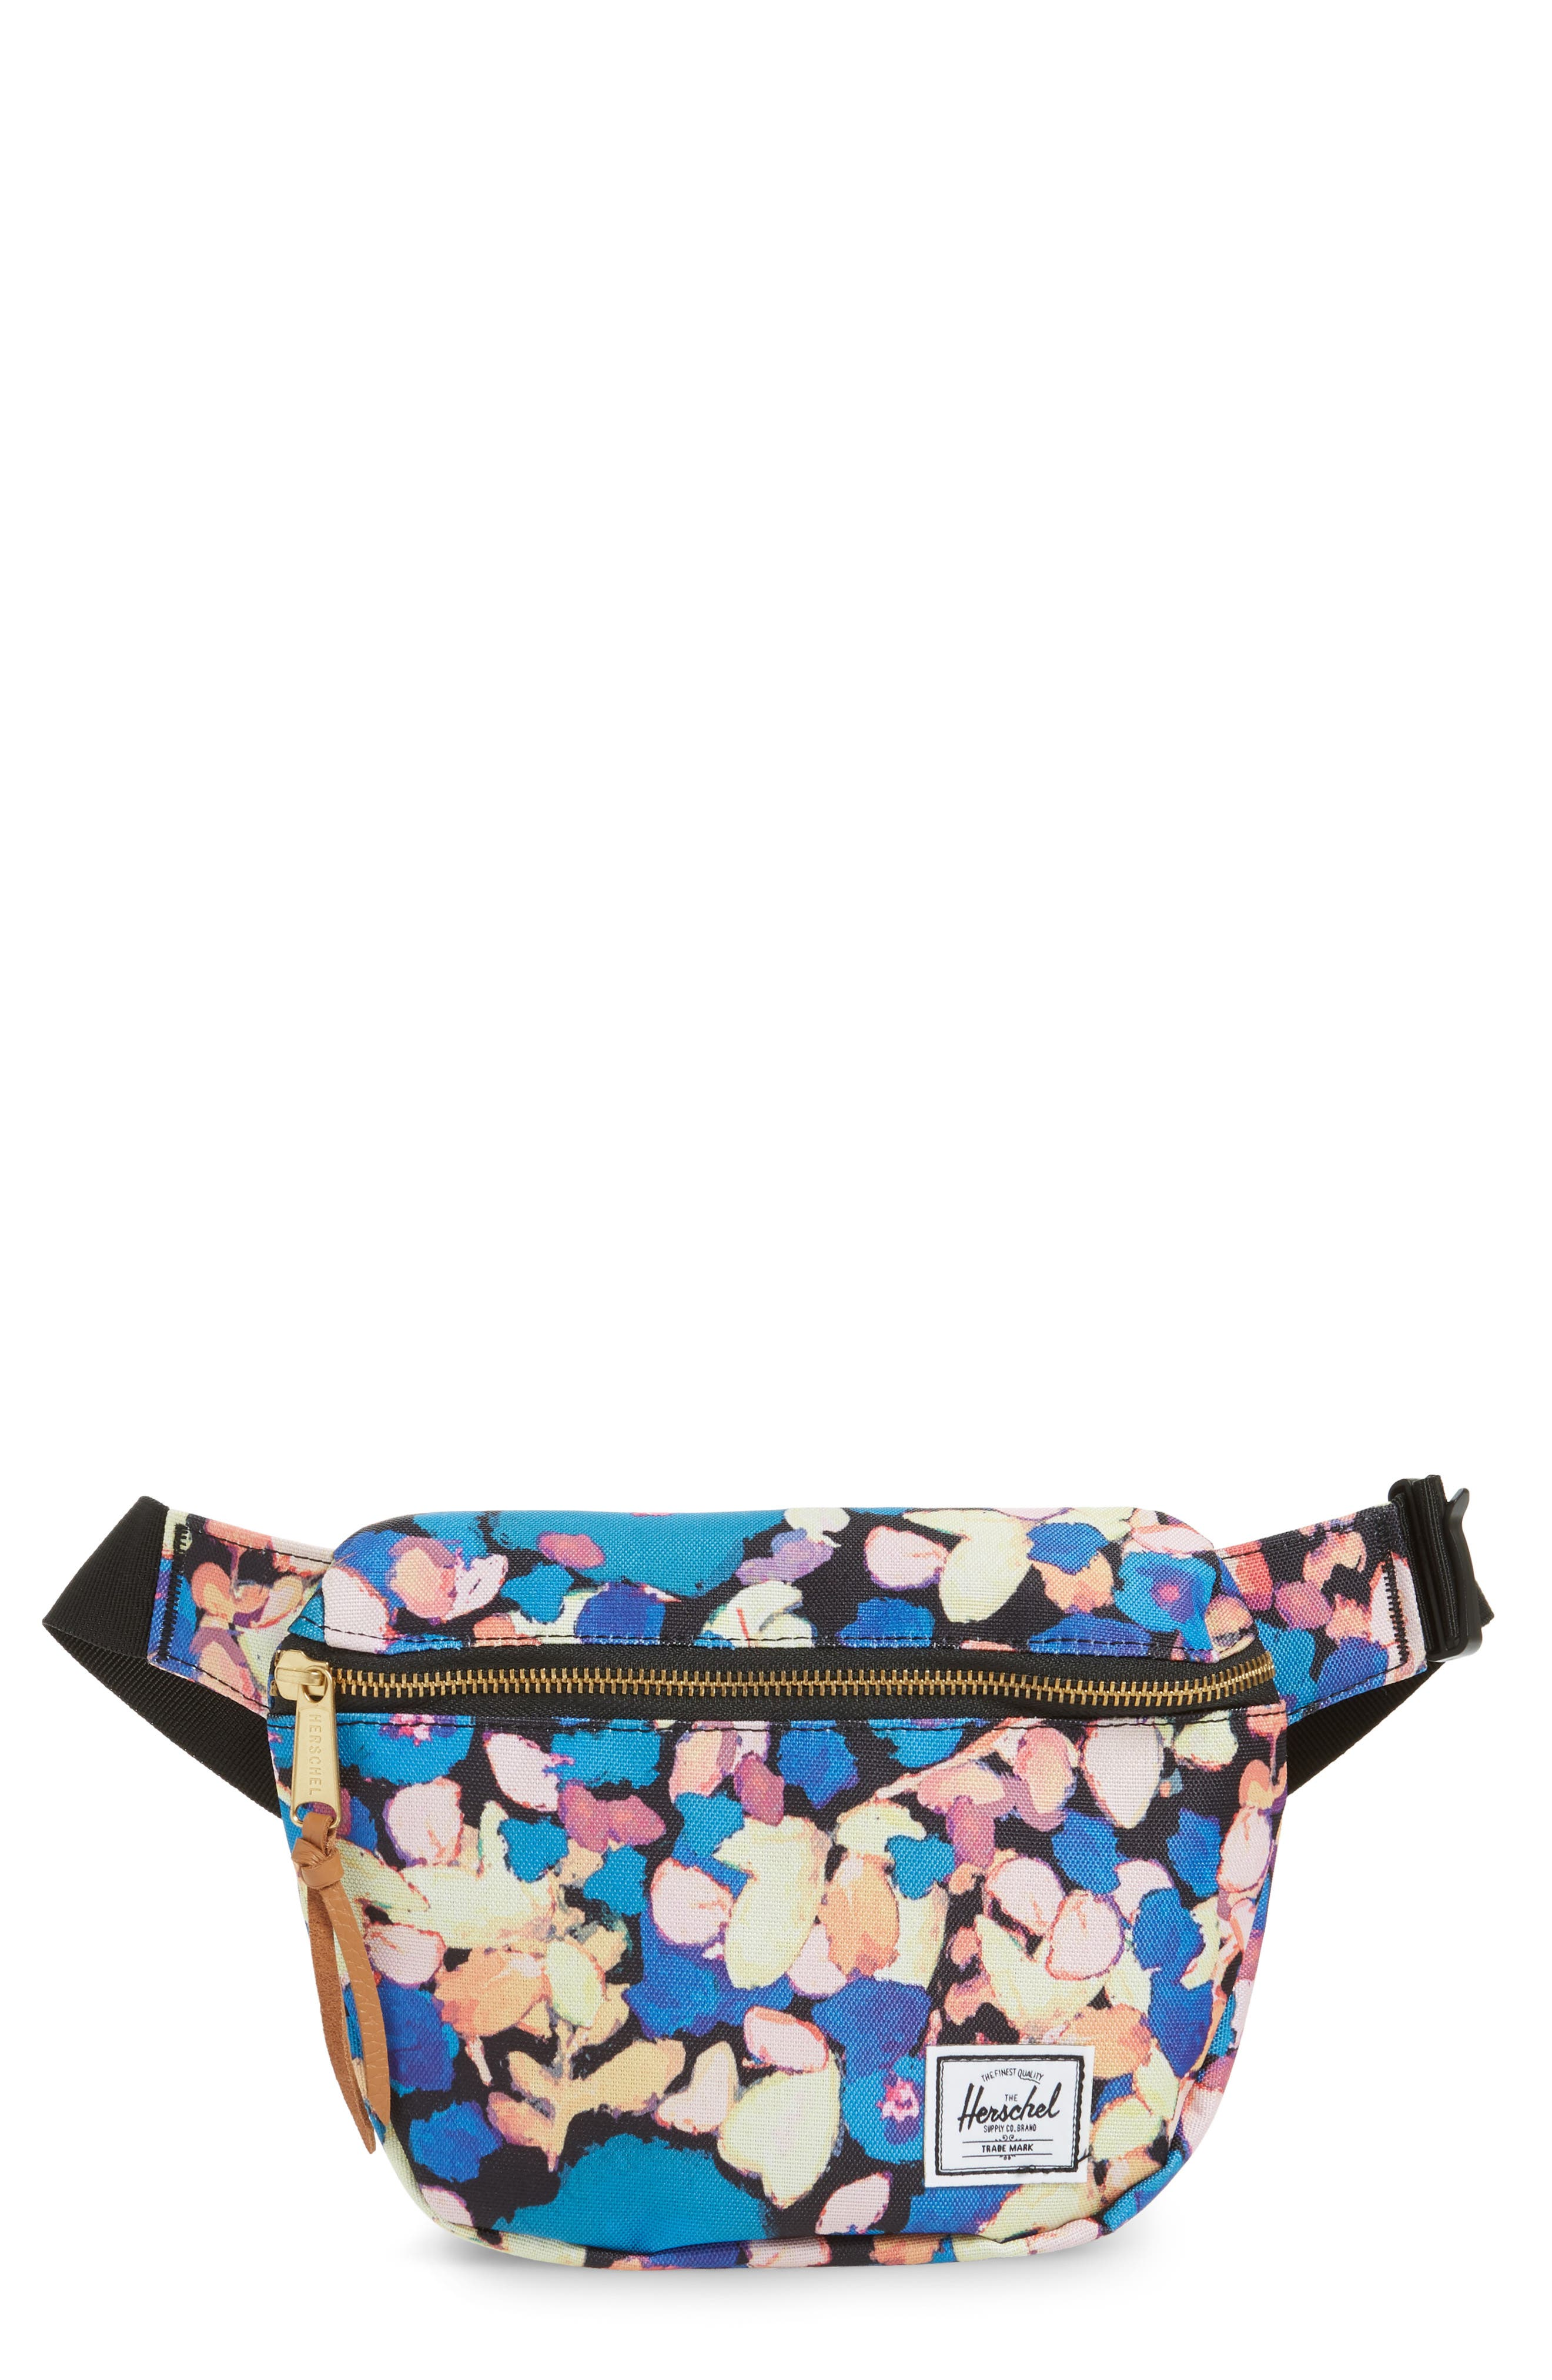 HERSCHEL SUPPLY CO., Fifteen Belt Bag, Main thumbnail 1, color, PAINTED FLORAL